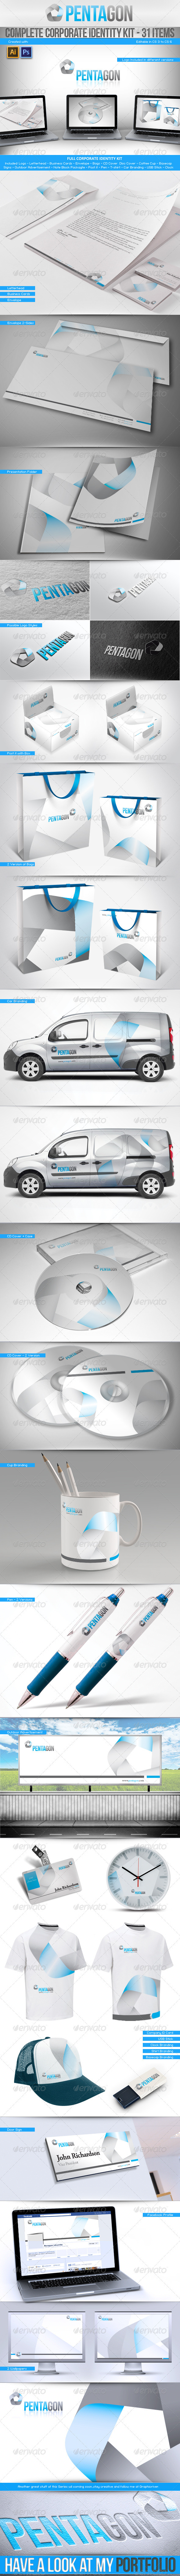 Corporate Identity Kit - Pentagon - 31 Items - Stationery Print Templates